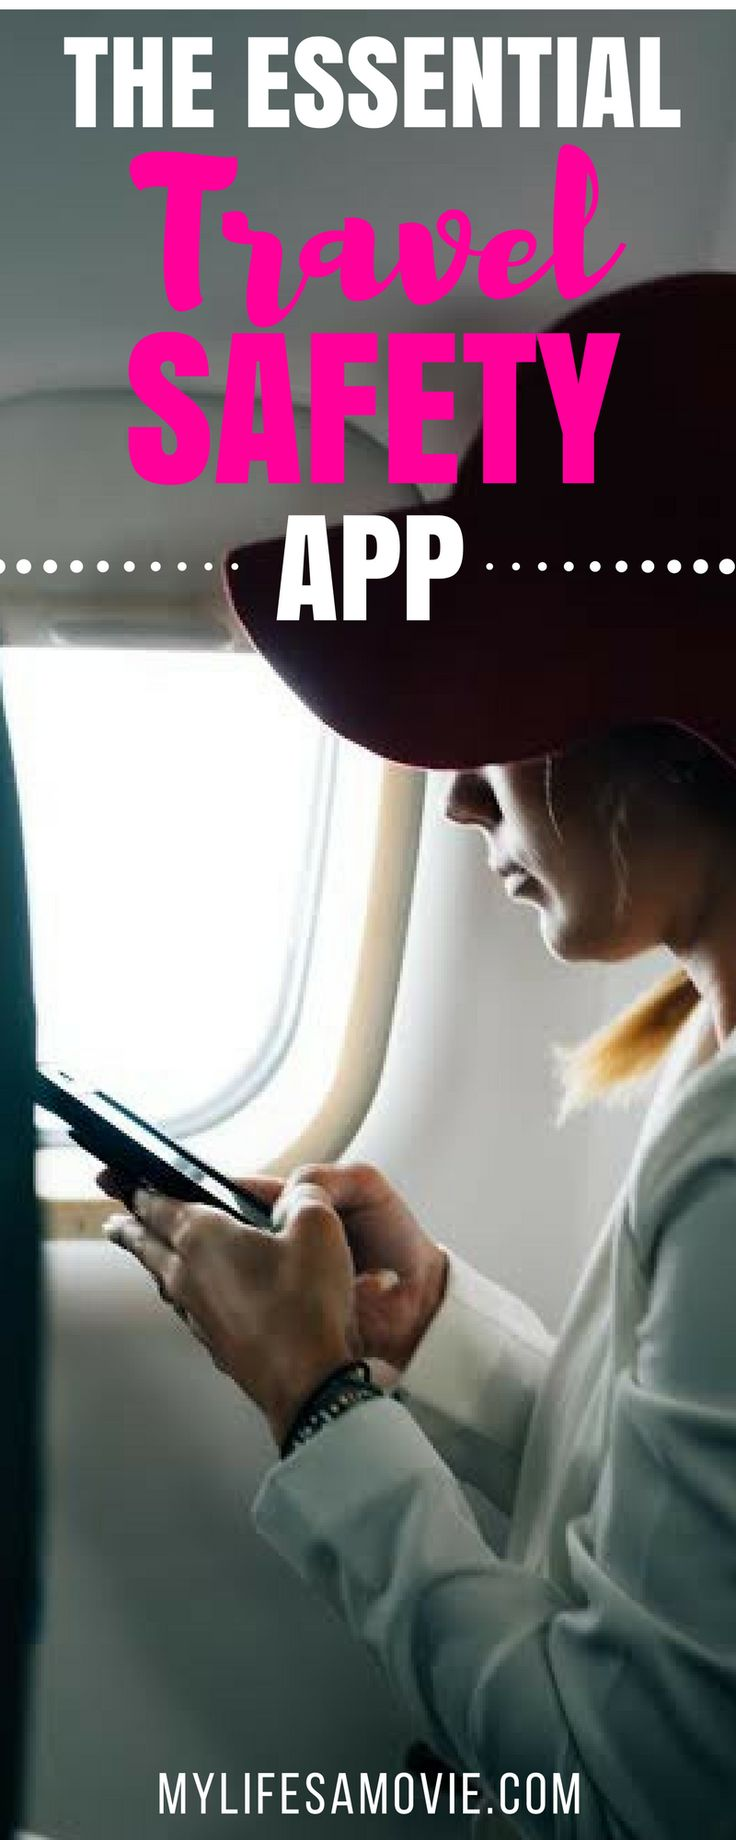 Check out the best travel safety app - TravelSmart app by Allianz